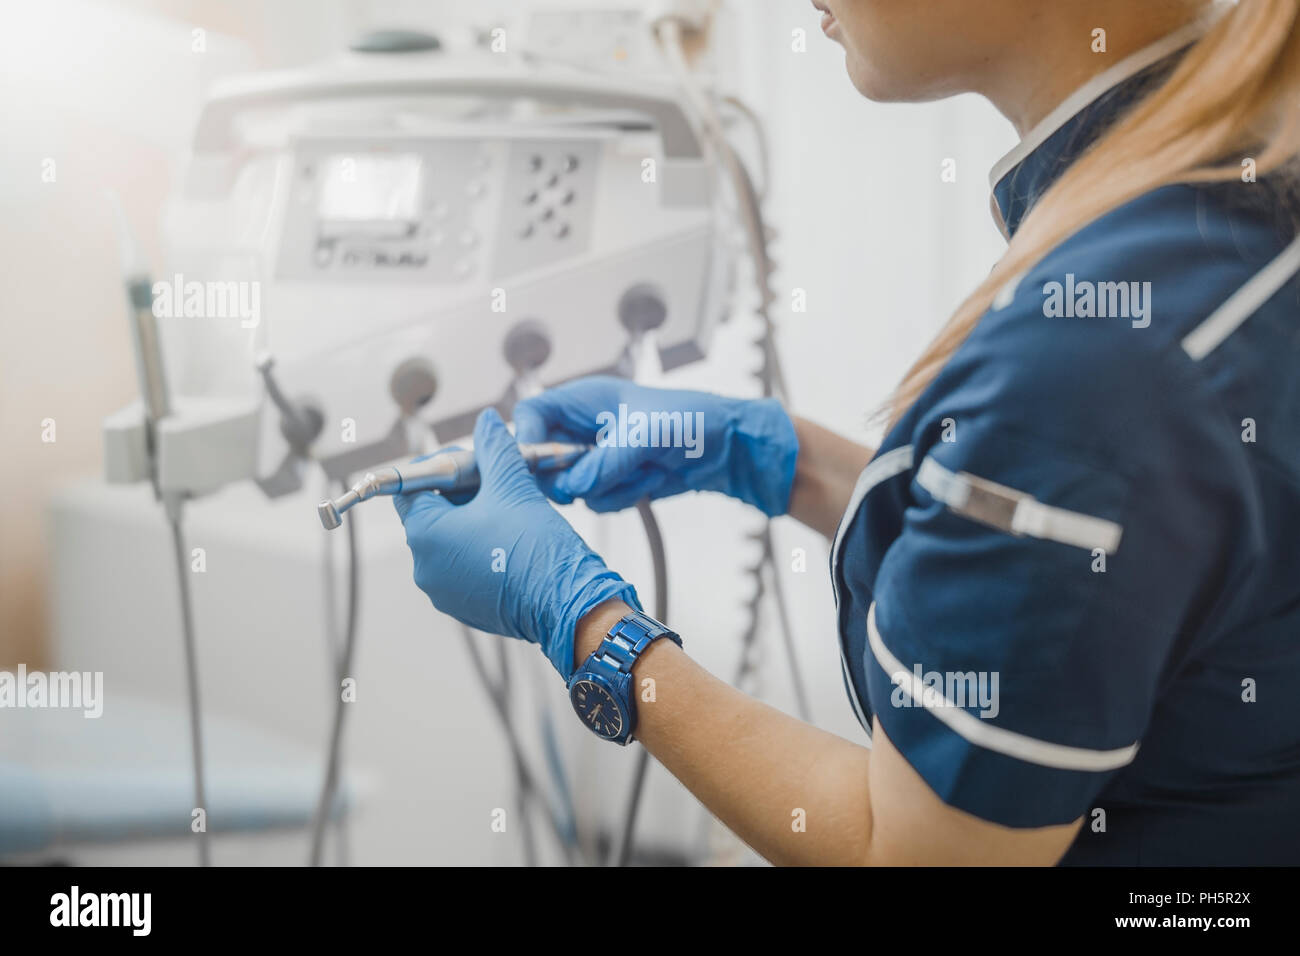 Close up of woman dentist in blue uniform checking dental equipment. - Stock Image